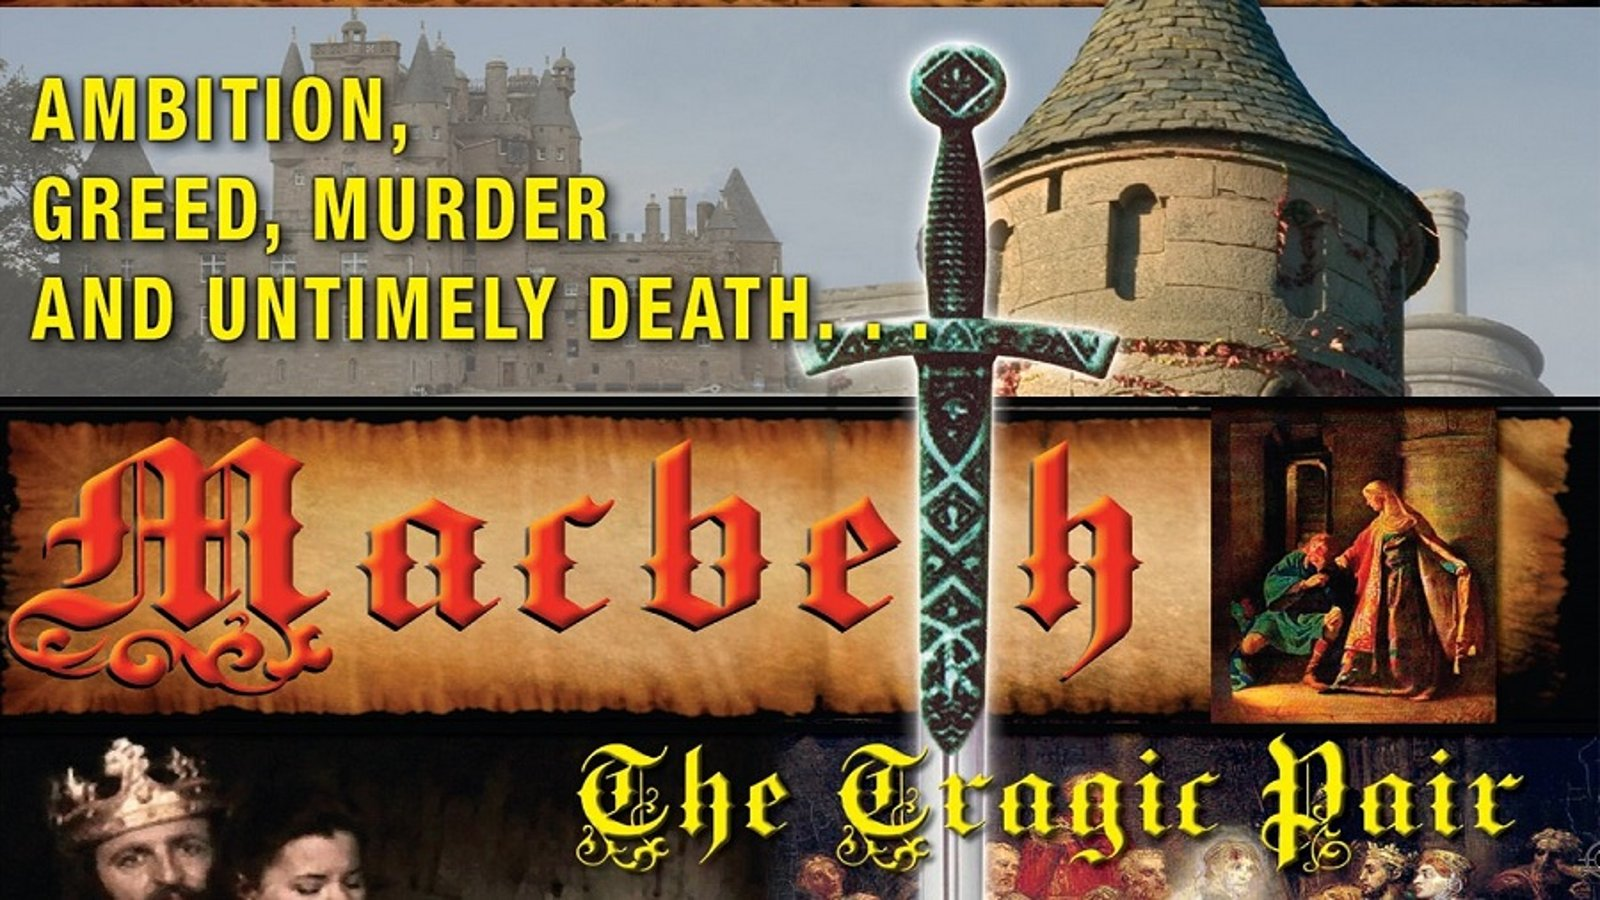 Macbeth - The Tragic Pair